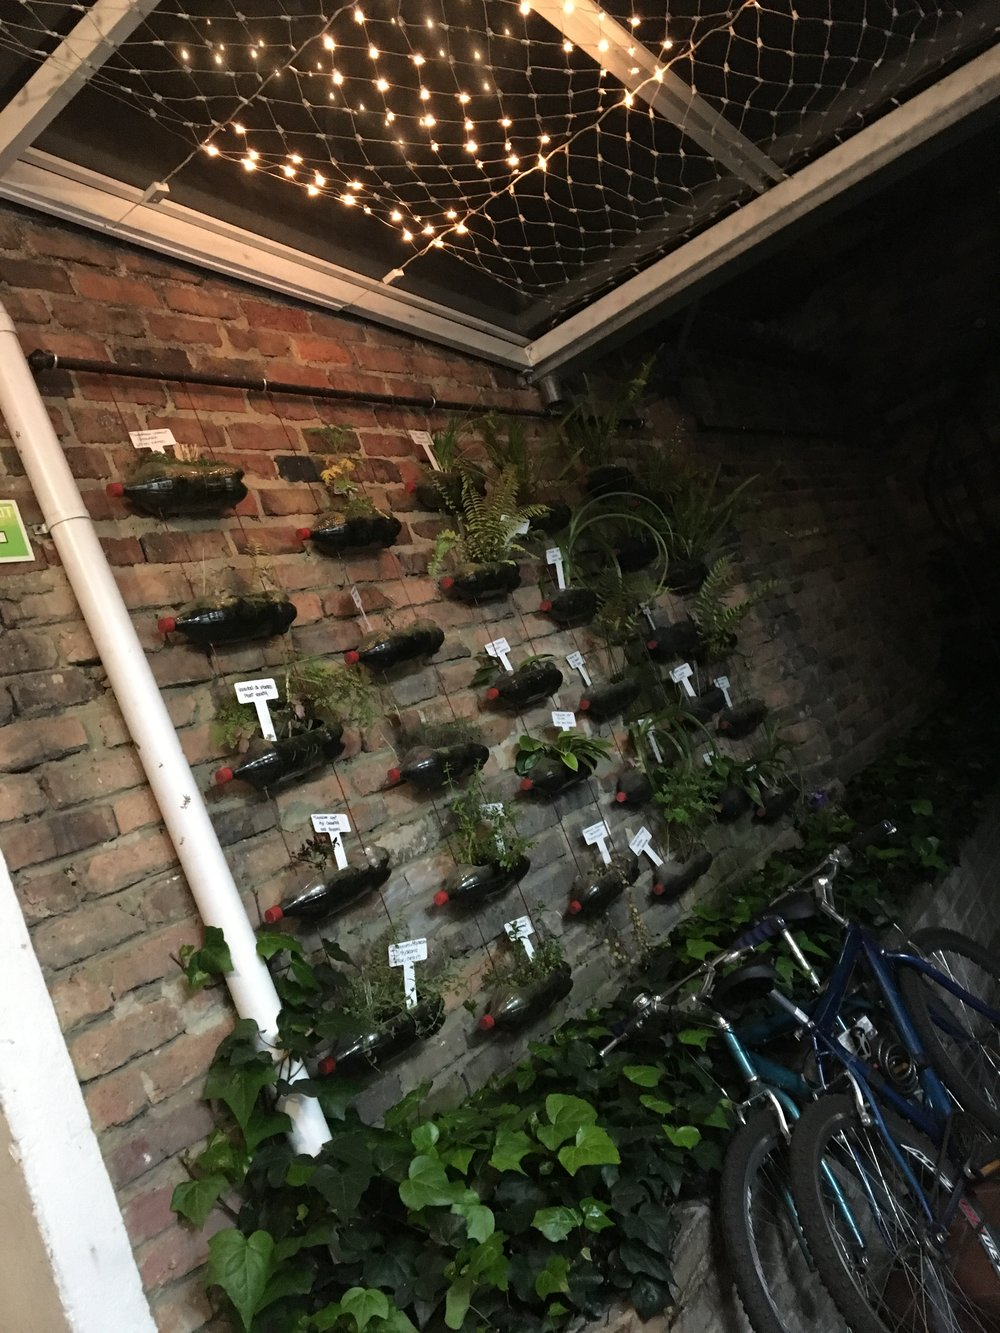 The vertical herb garden outside our room at the hostel.